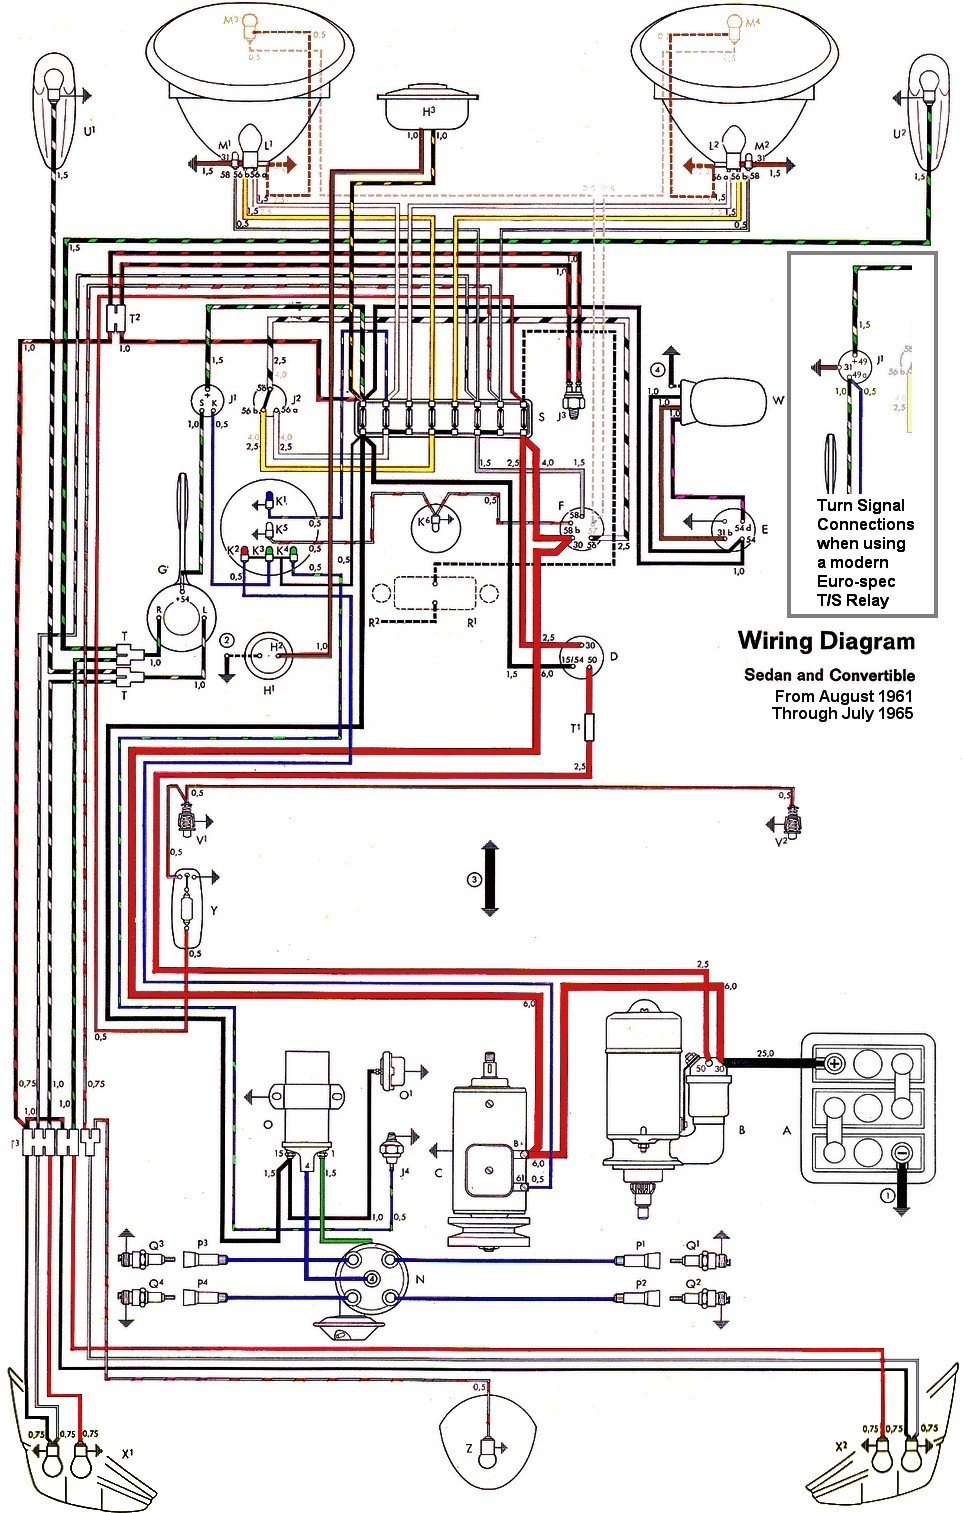 bug_62 65withinset thesamba com type 1 wiring diagrams 1968 vw bug wiring diagram at bayanpartner.co